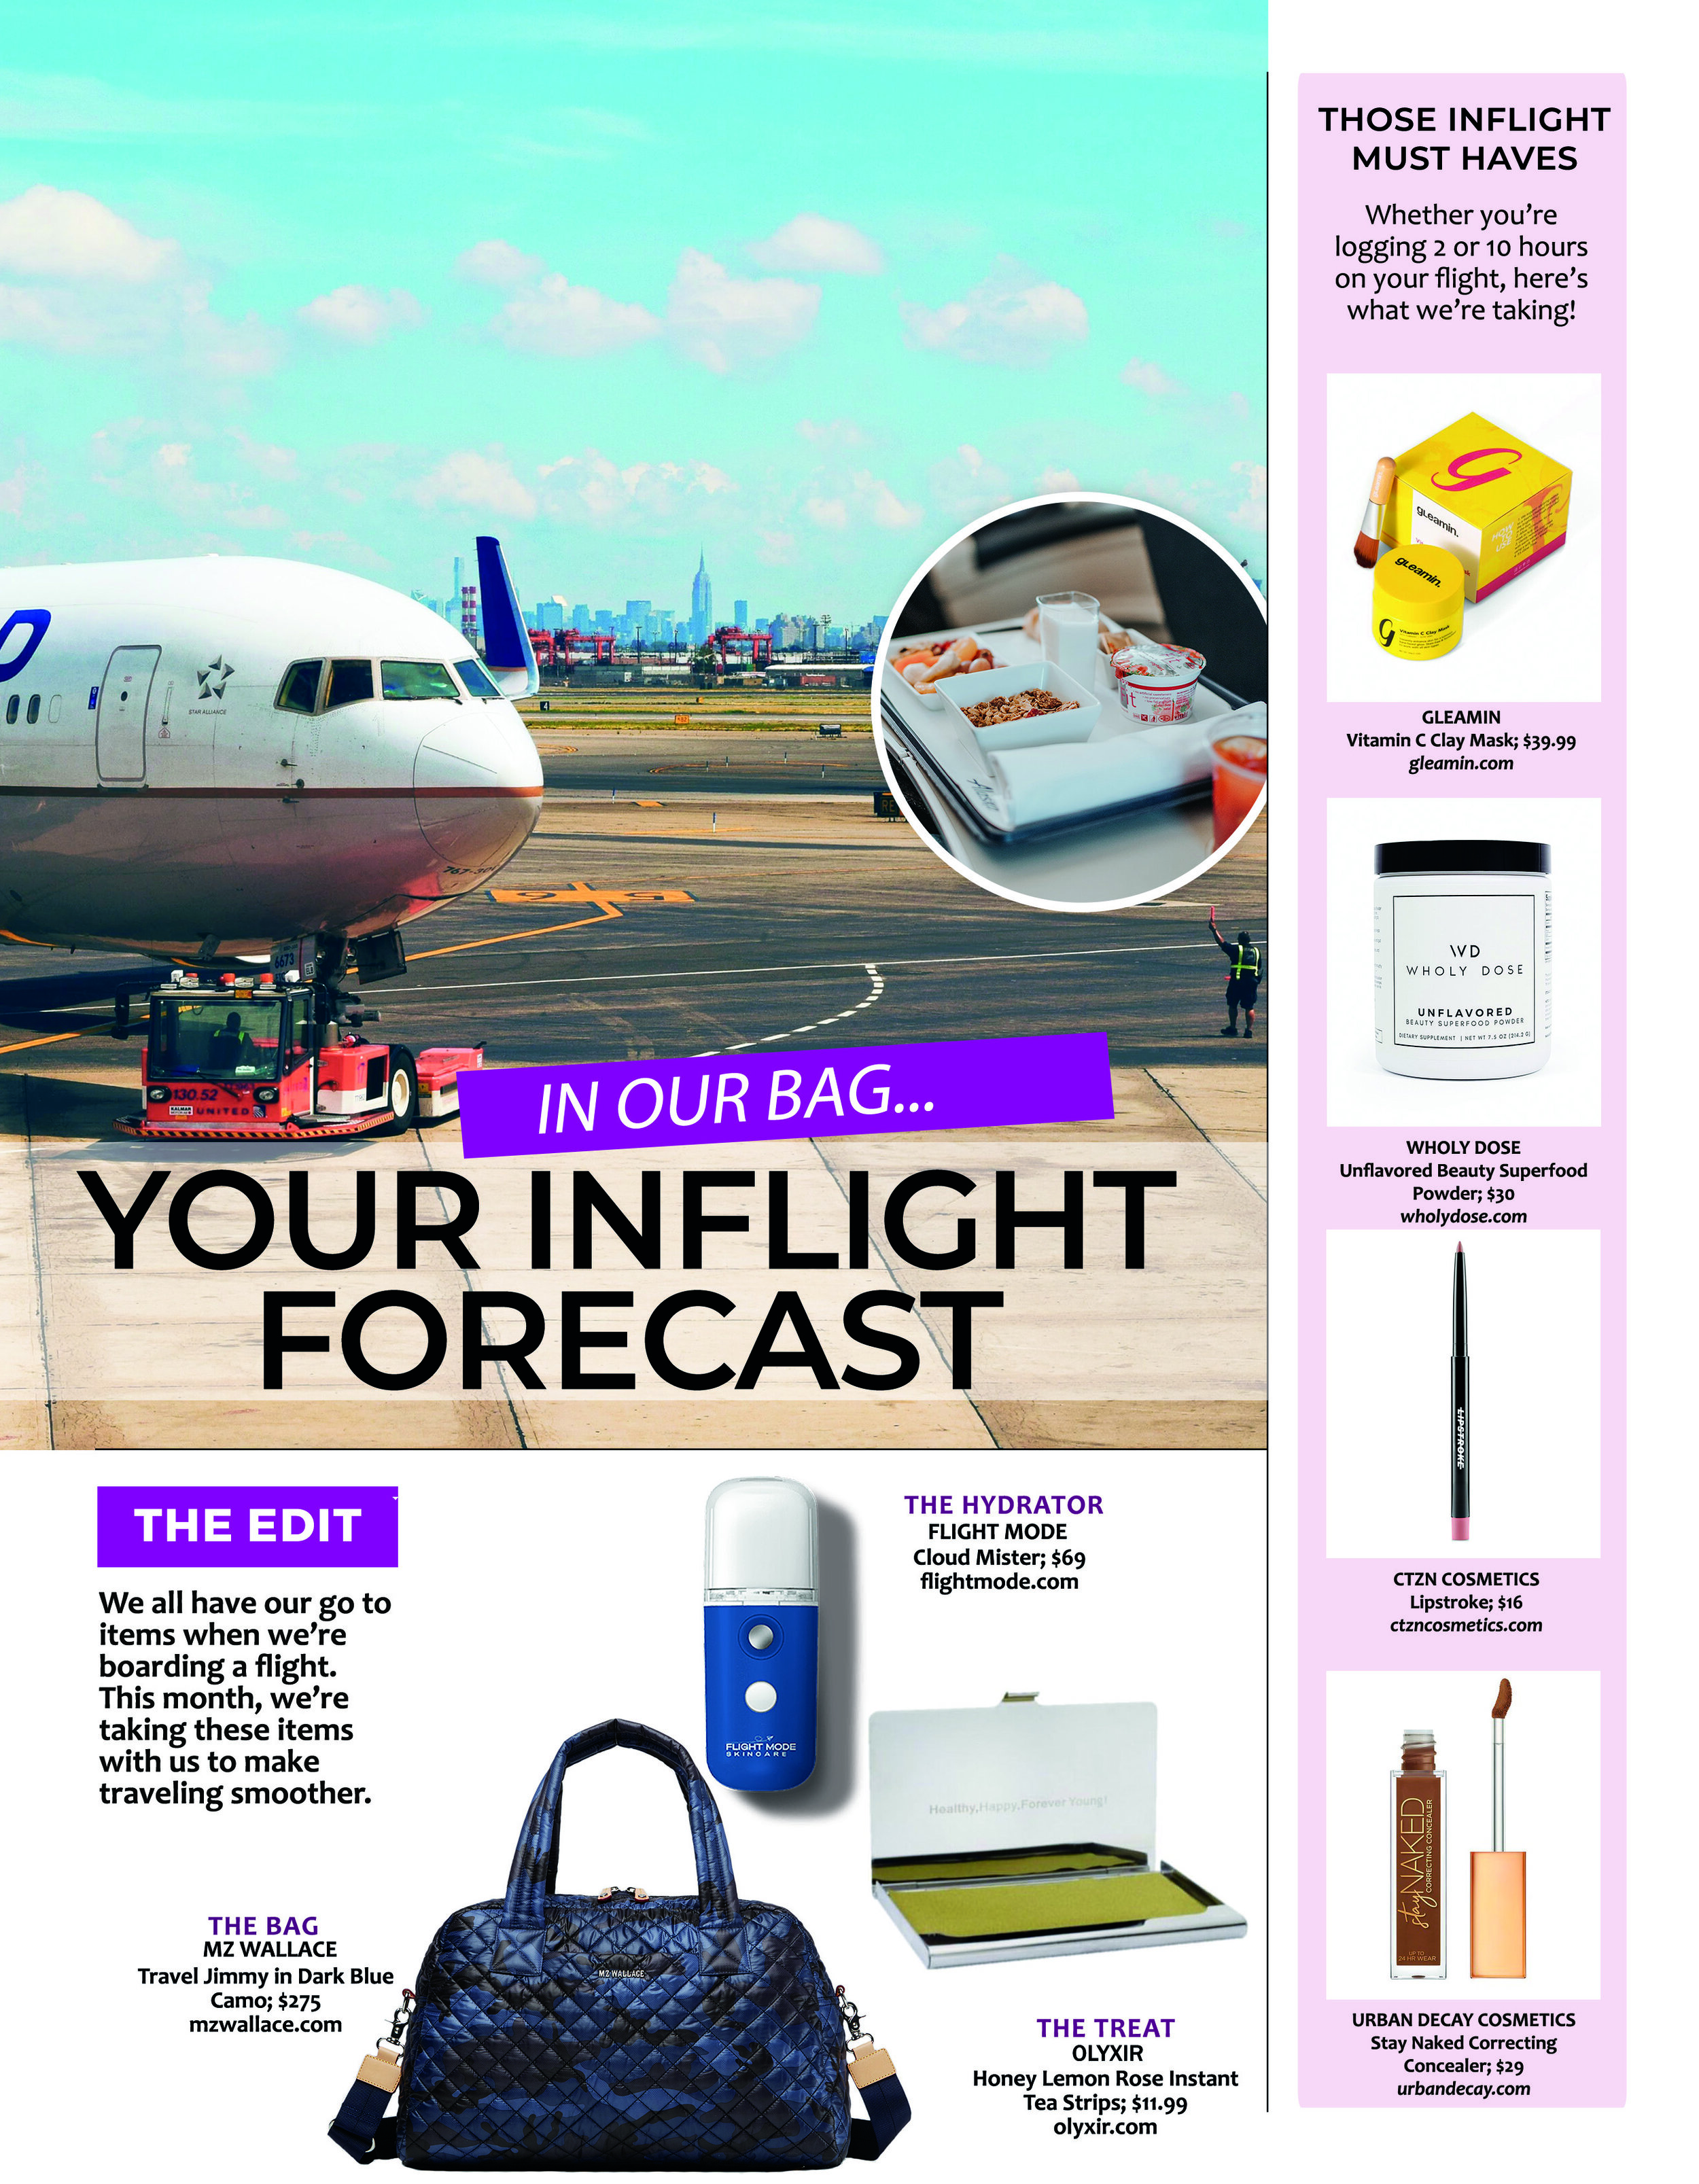 IN OUR BAG YOUR INFLIGHT FORECAST.jpg